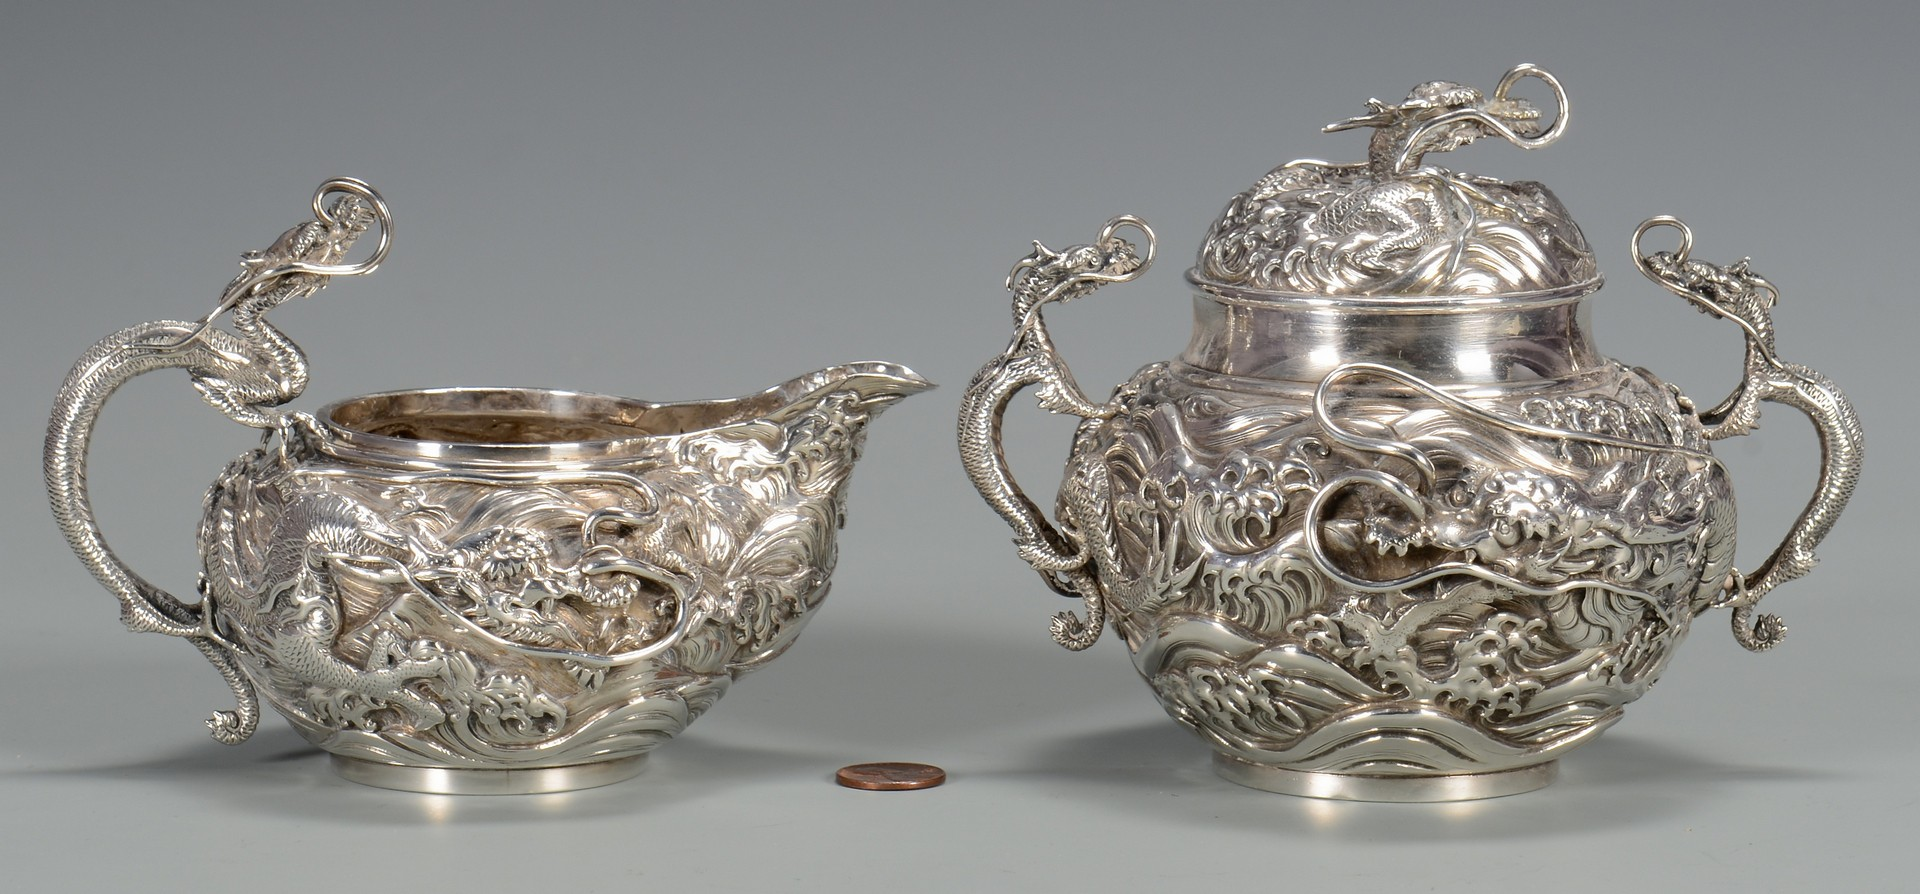 Lot 3594150: Japanese Meiji Silver Sugar & Creamer